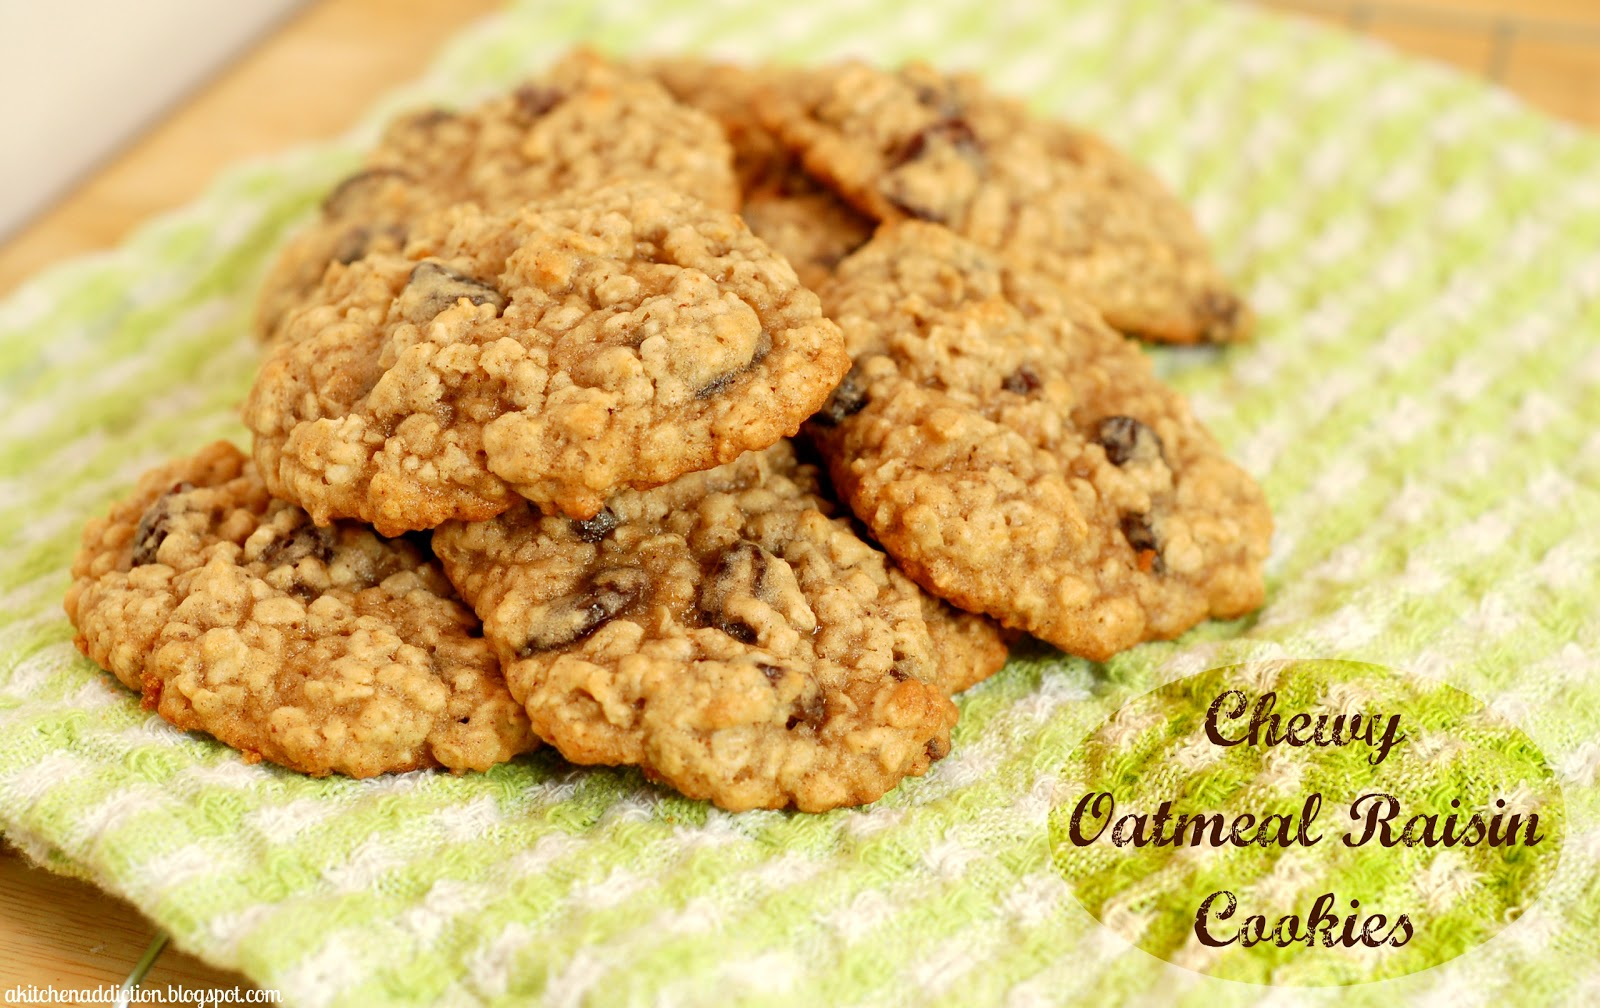 Chewy Oatmeal Raisin Cookies - A Kitchen Addiction